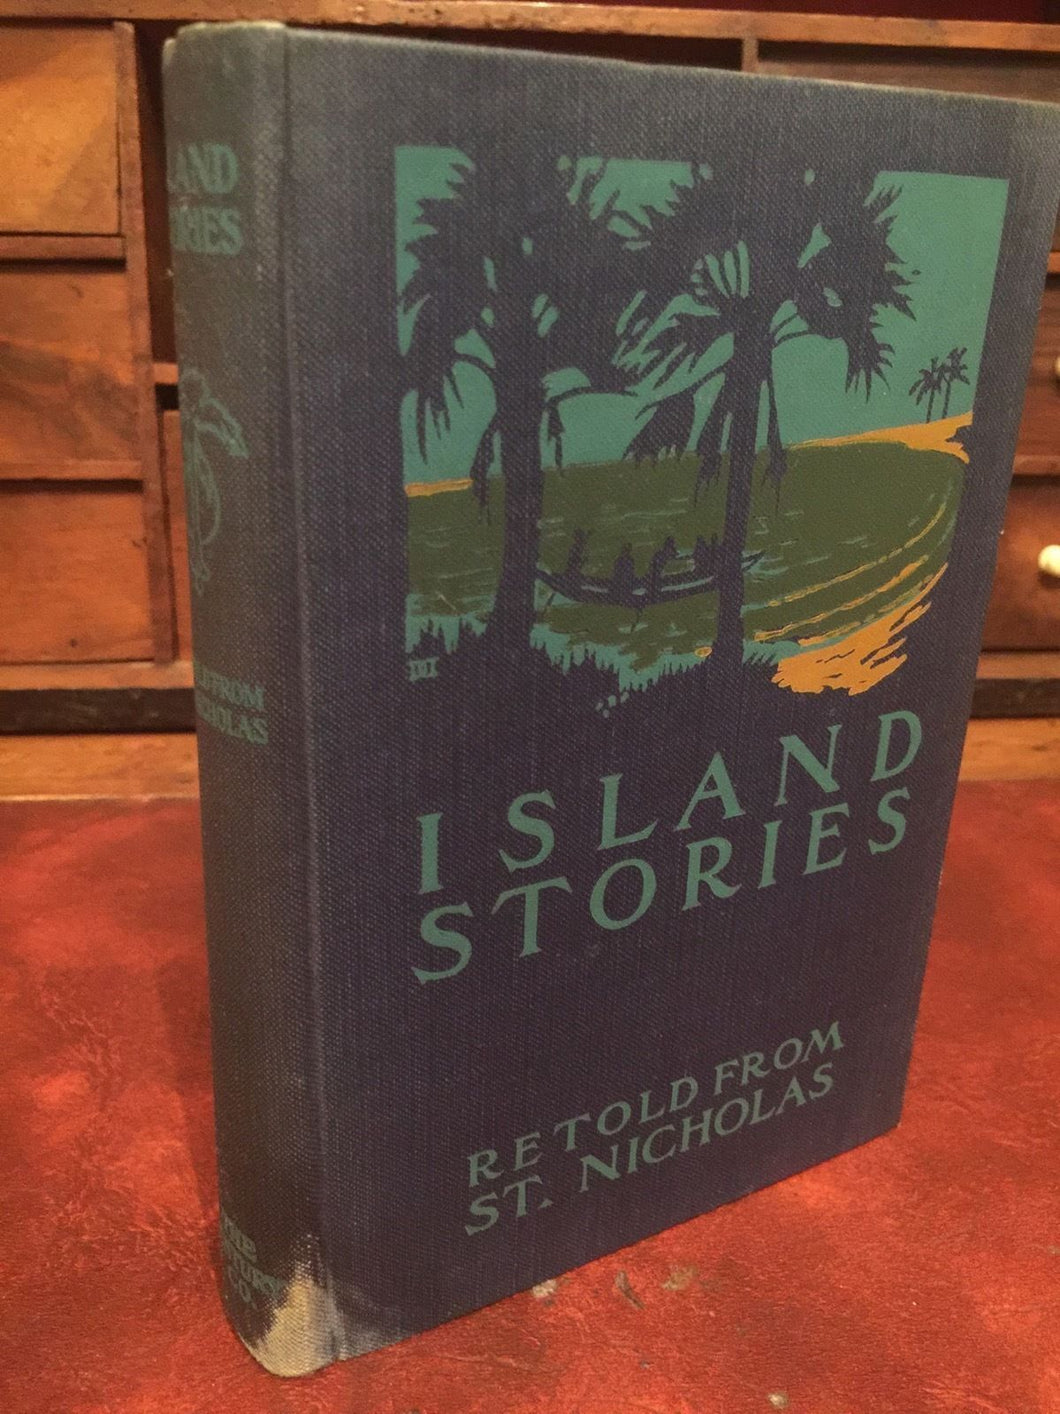 ISLAND STORIES, Retold from St. Nicholas - 1923 - SOUTH PACIFIC ILLUSTRATED RARE